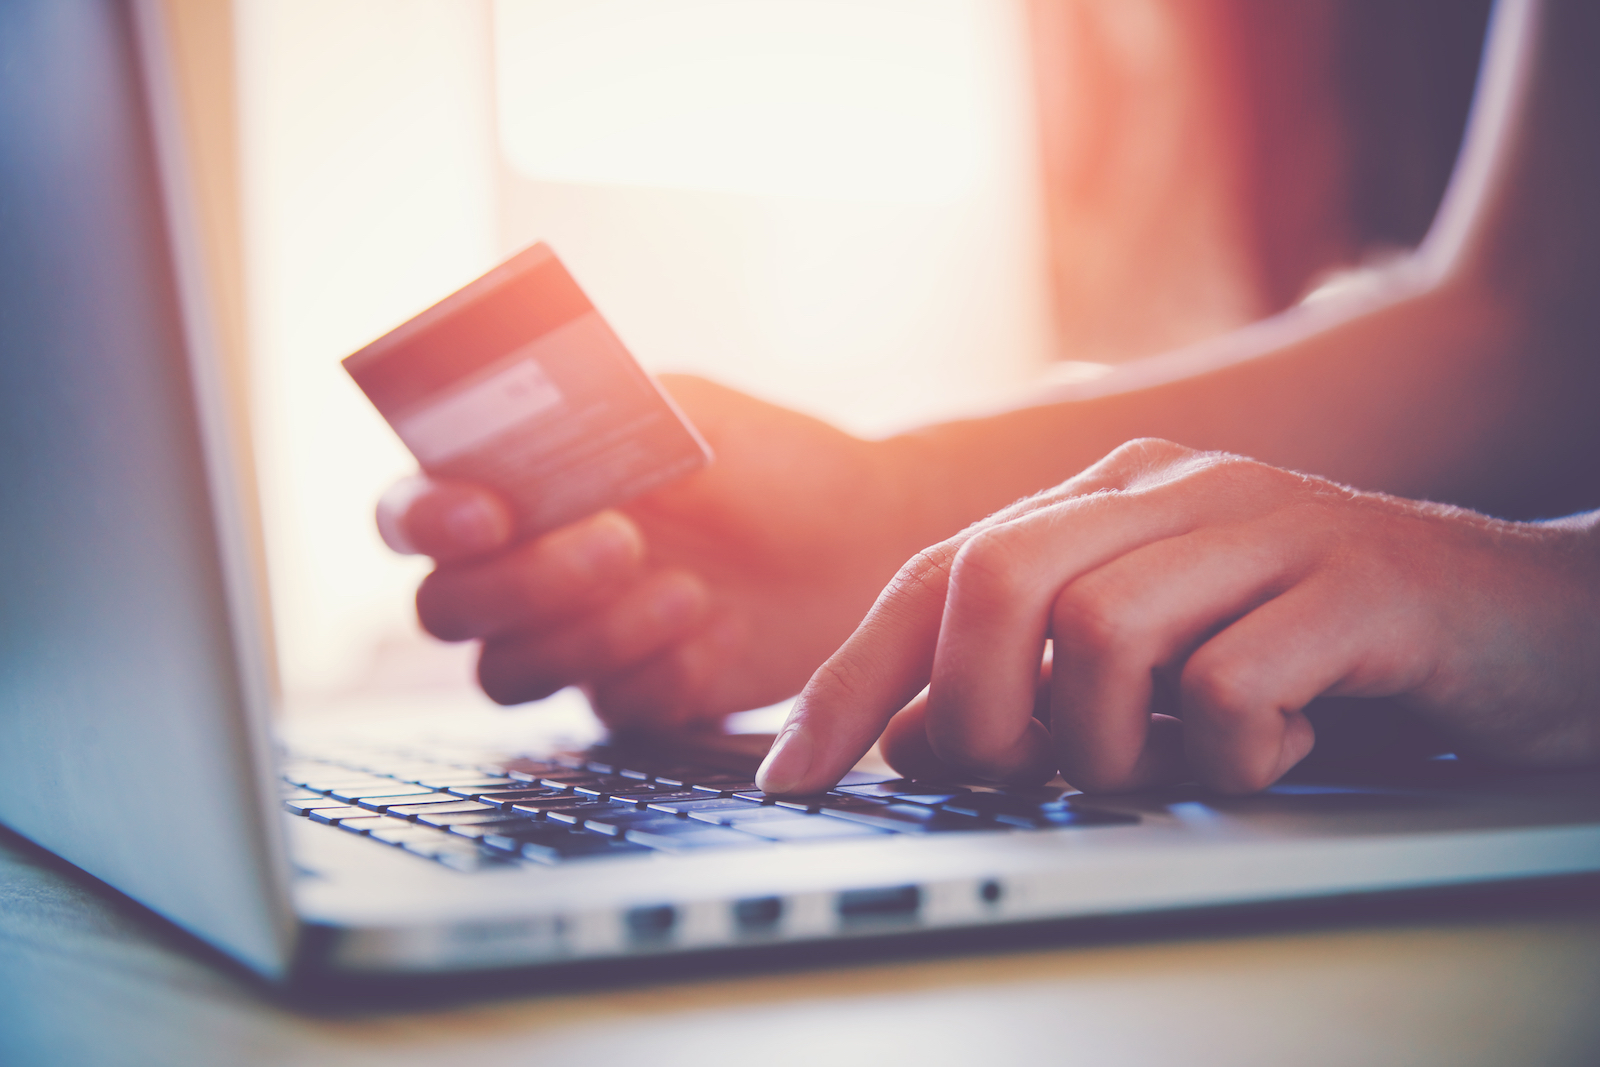 Laptop and Debit Card | Ecommerce Website Builder: Easy Guide To Launching A Site